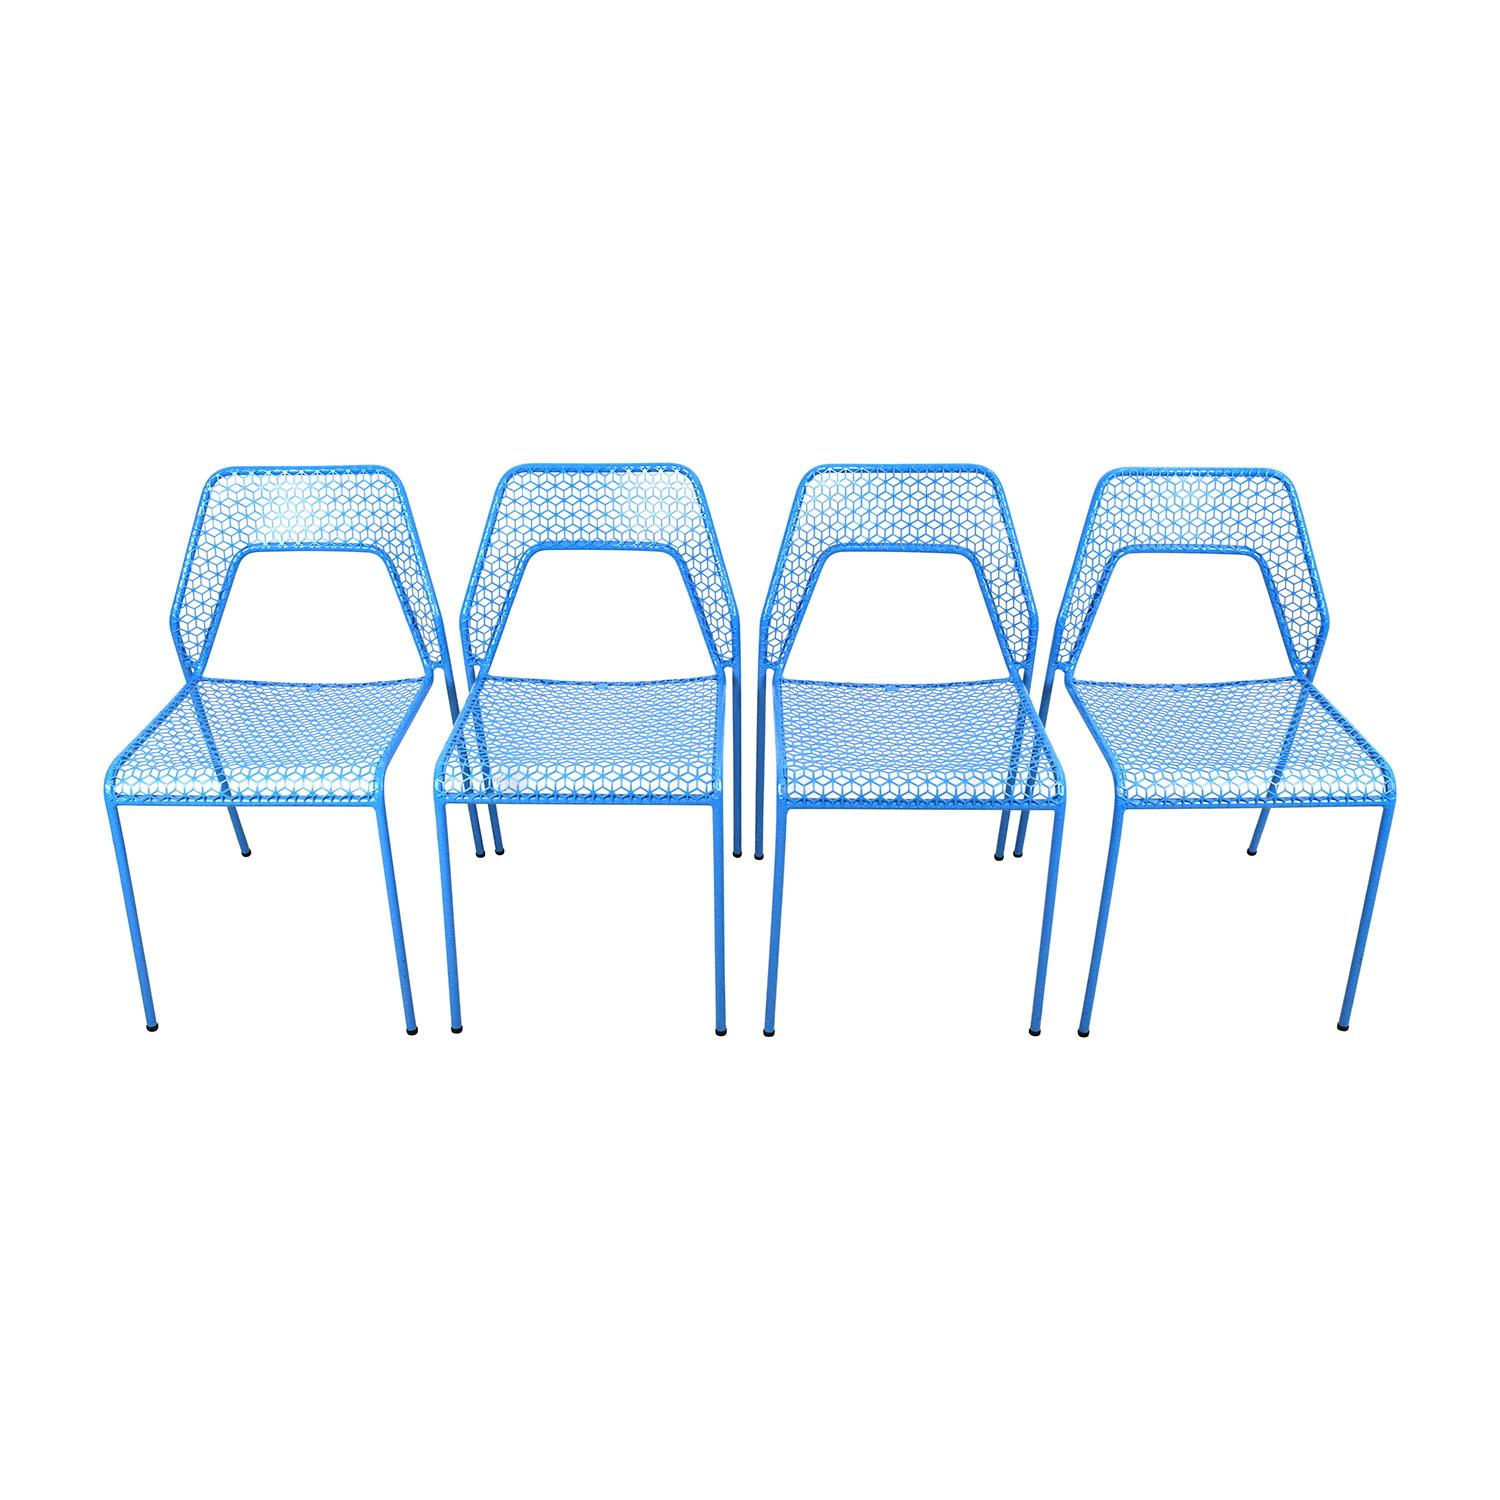 Blu Dot Hot Mess Chipper Blue Steel Mesh Chairs / Chairs